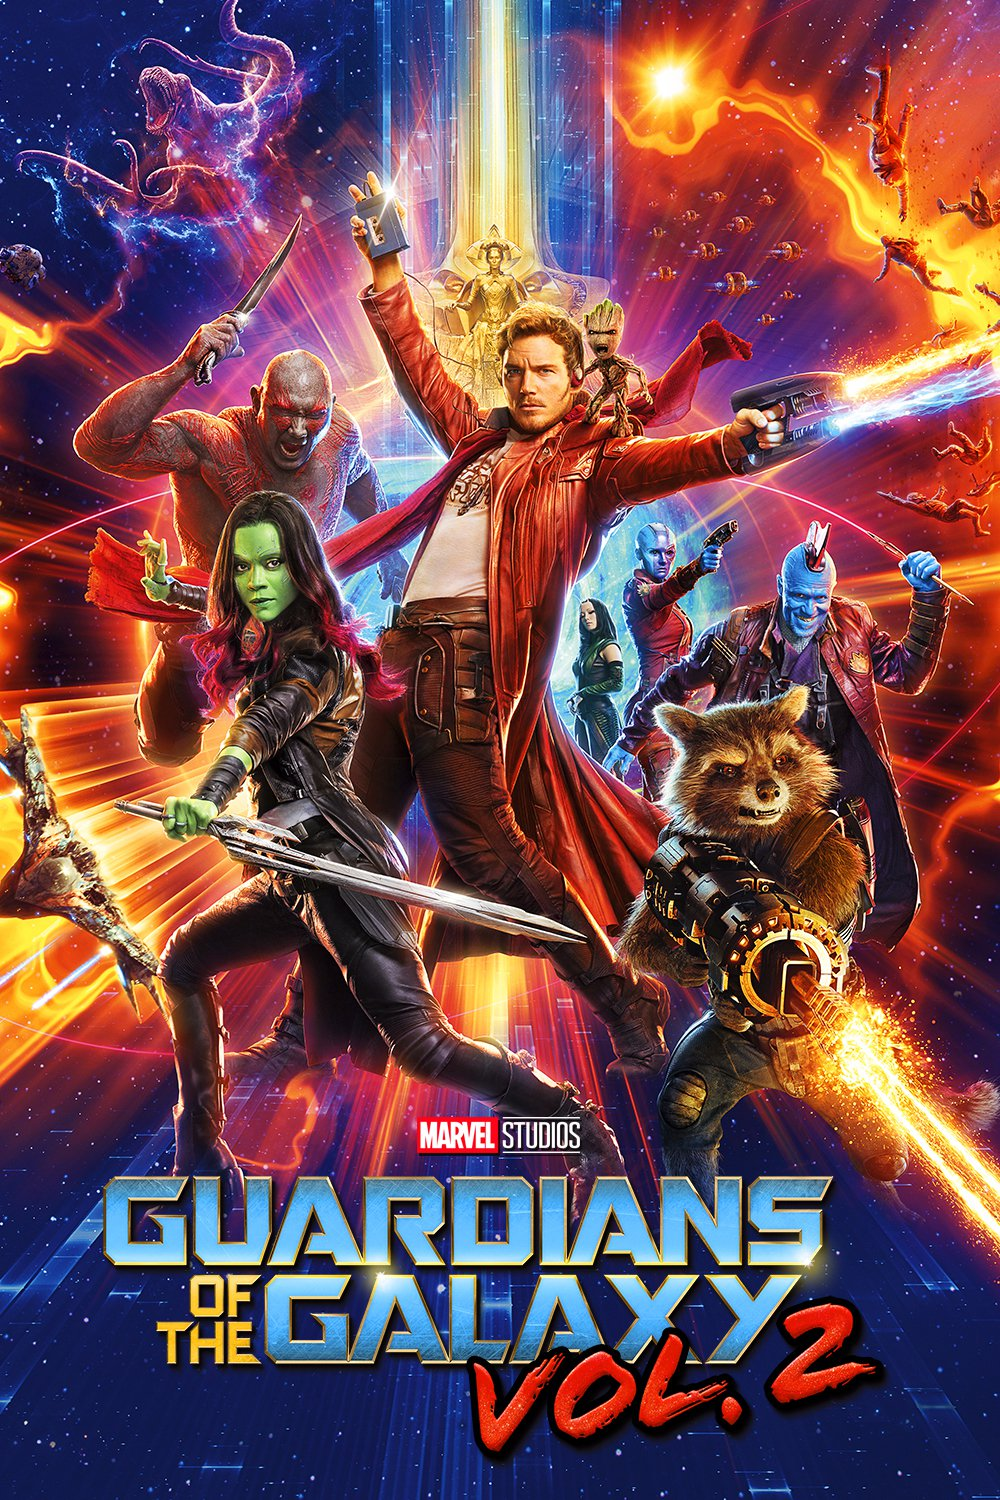 Guardians of the Galaxy Vol. 2 - Blackiflix - Free Unlimited Movie Powered by Blackination